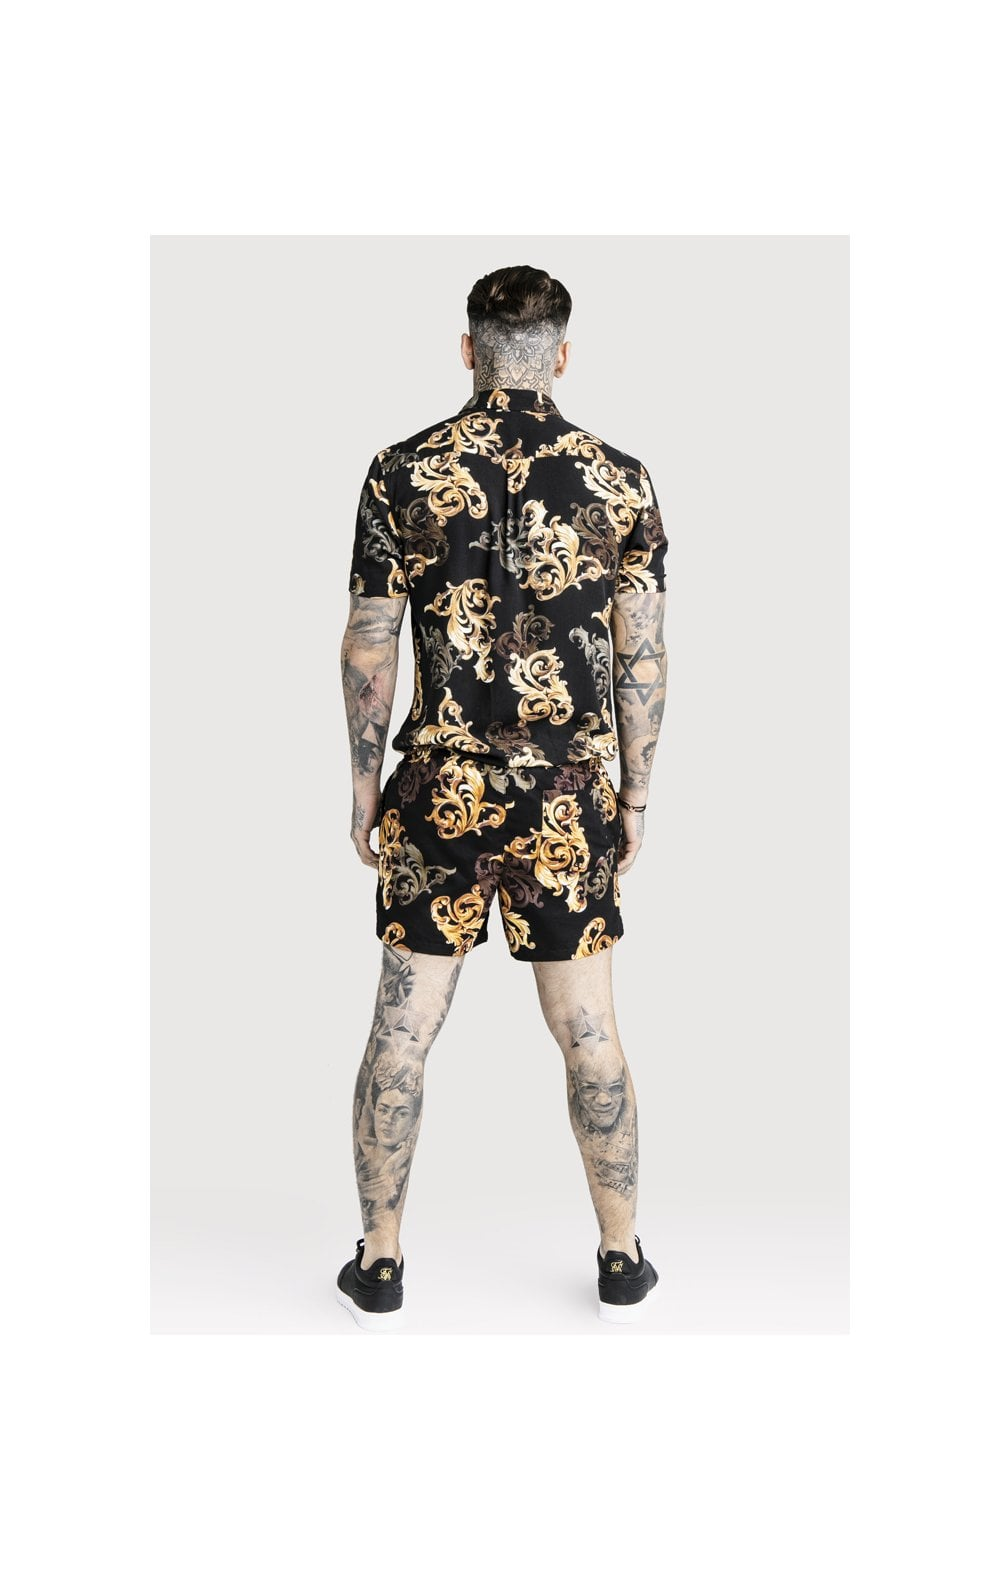 SikSilk x Dani Alves Swim Shorts - Black & Gold (7)